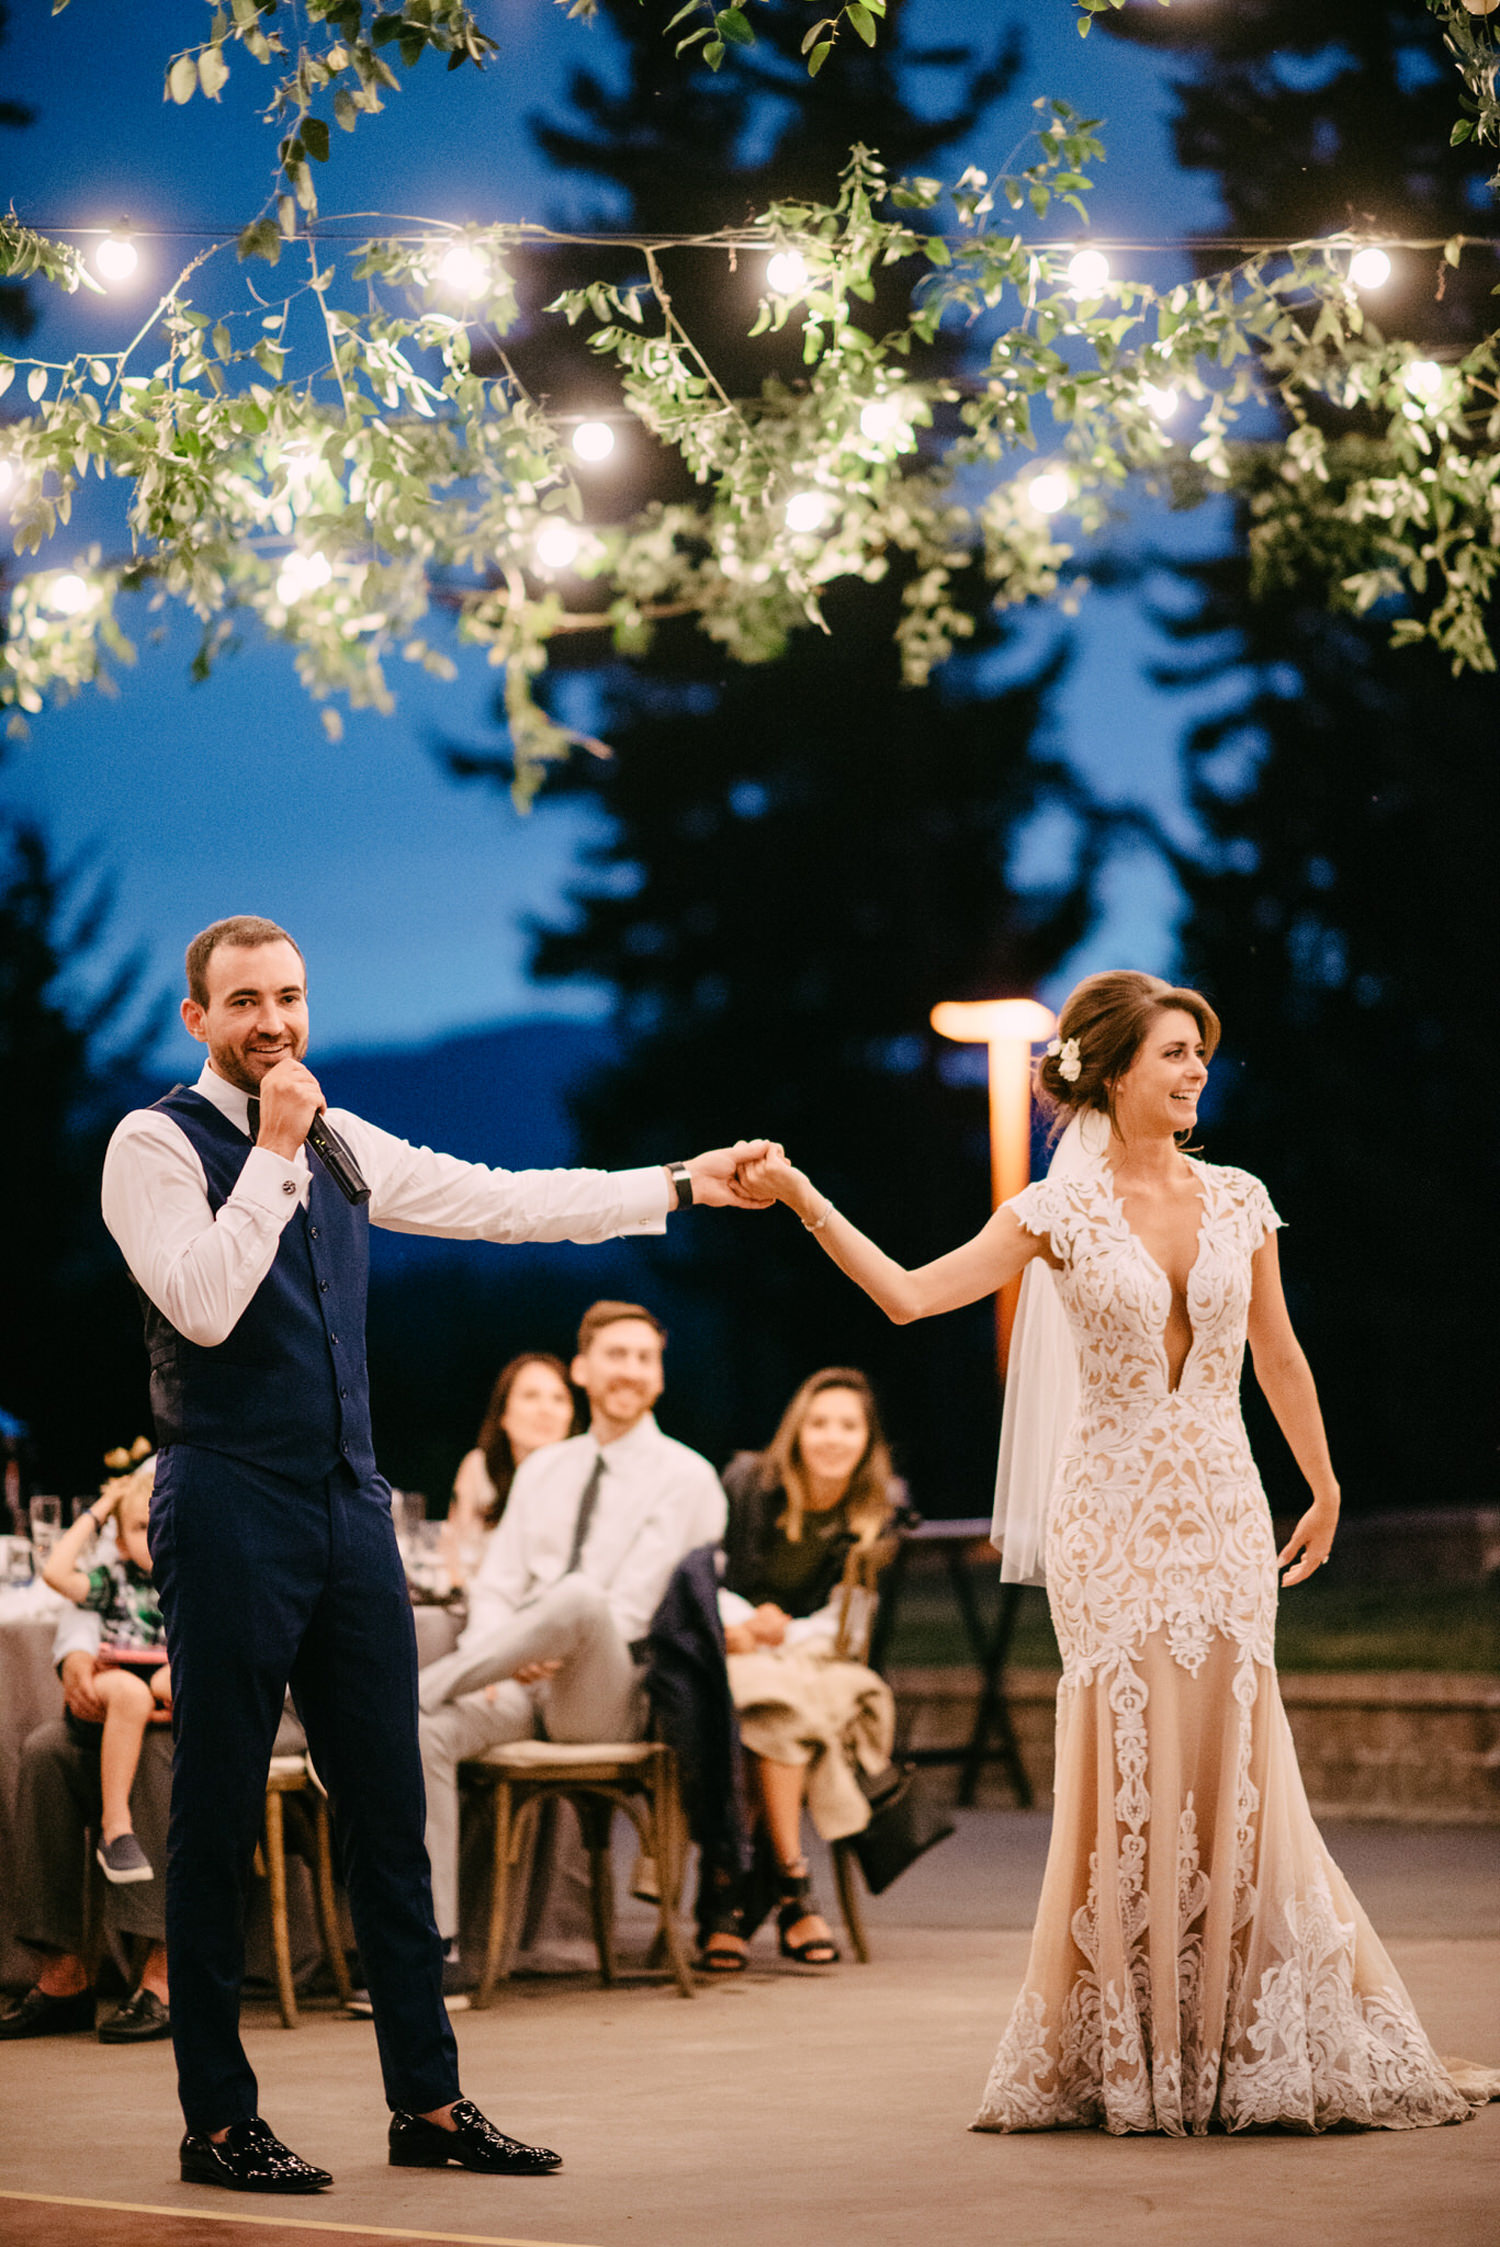 311-bright-coral-wedding-with-sinclair-and-moore-at-suncadia-resort.jpg